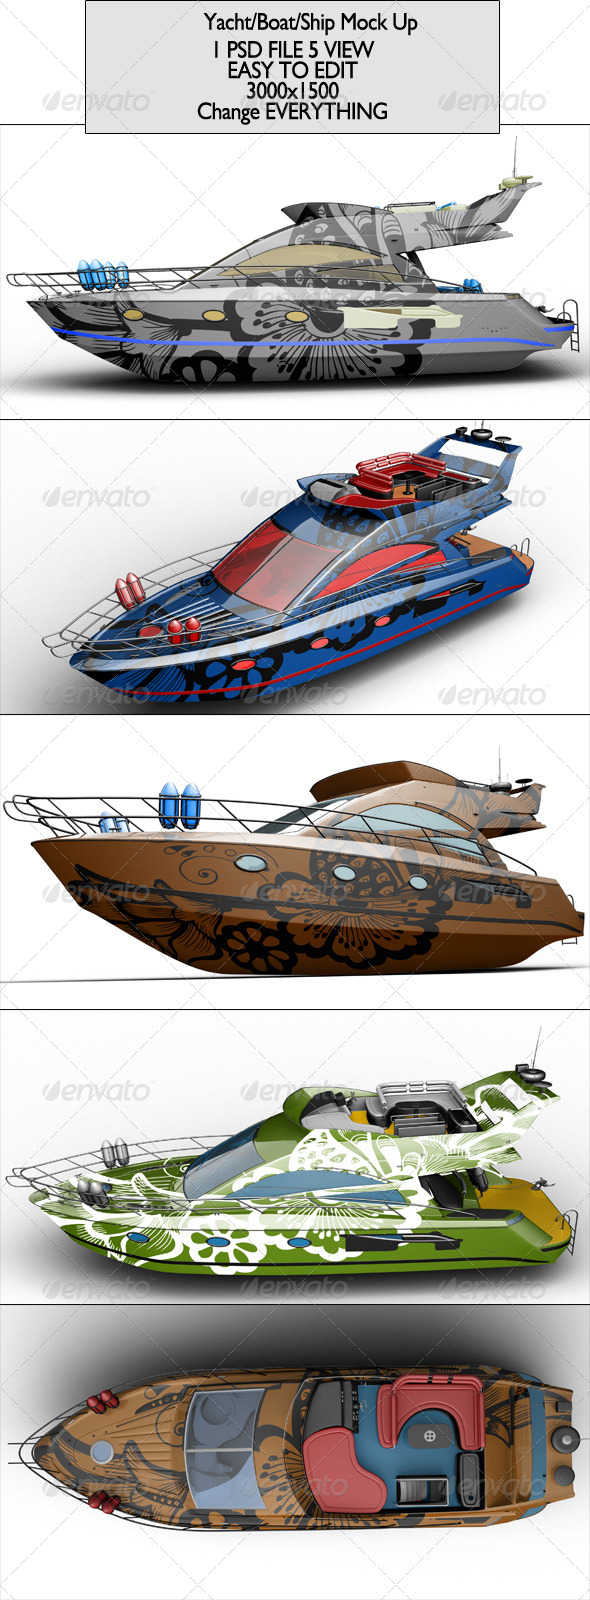 GraphicRiver Yacht Boat Ship Mock Up 7005918